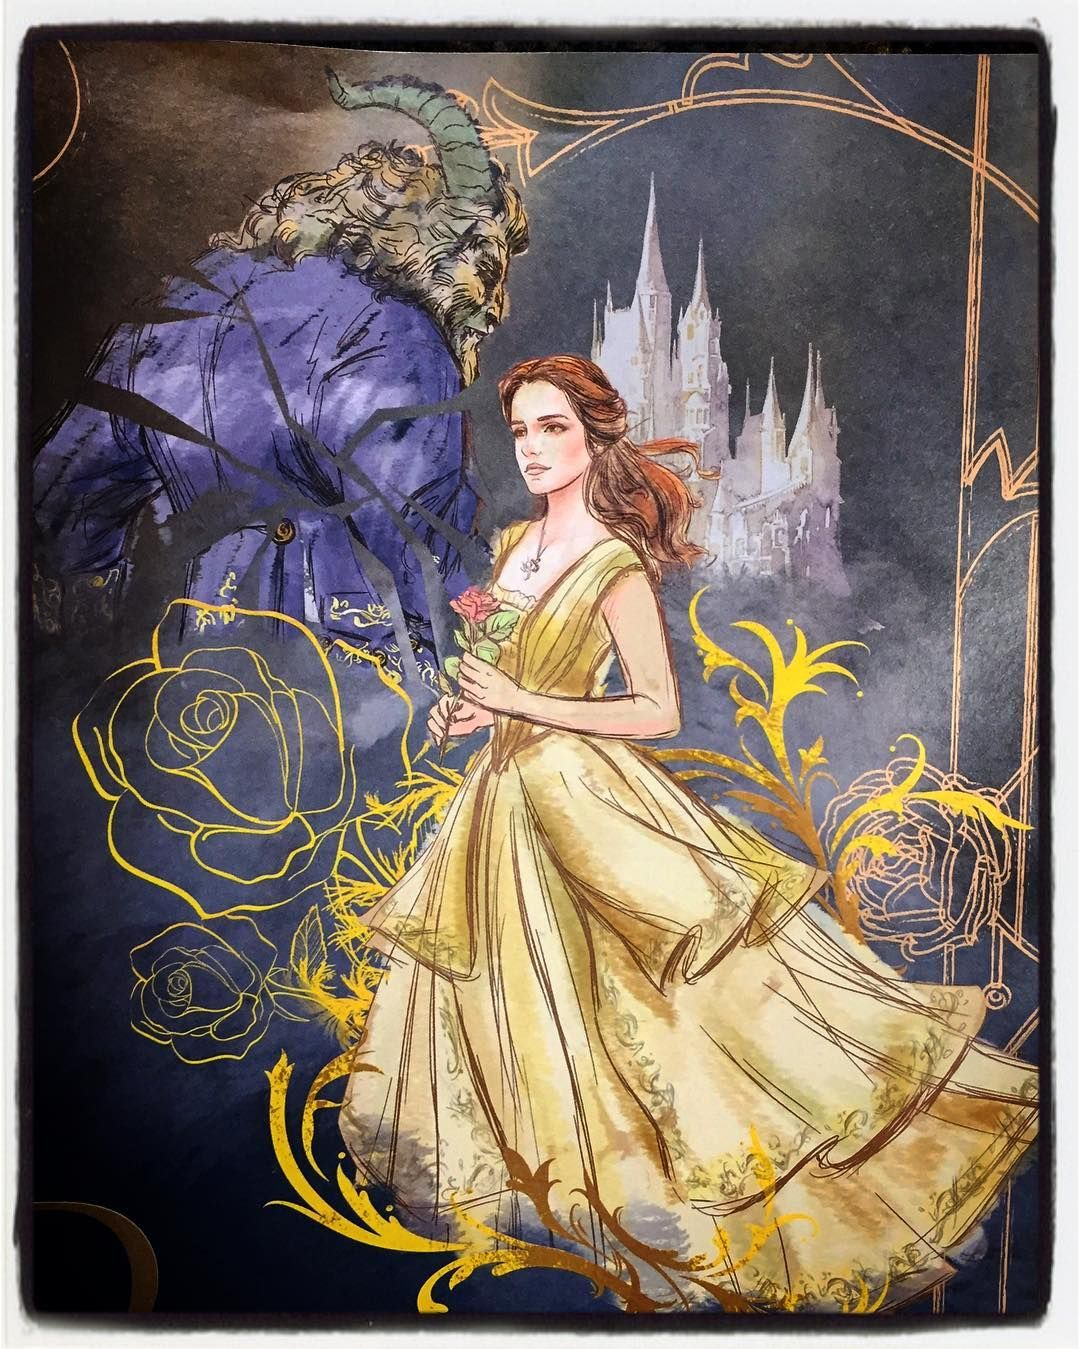 See This Instagram Photo By Princericharming 286 Likes Beauty And The Beast Art Beauty And The Beast Disney Beauty And The Beast